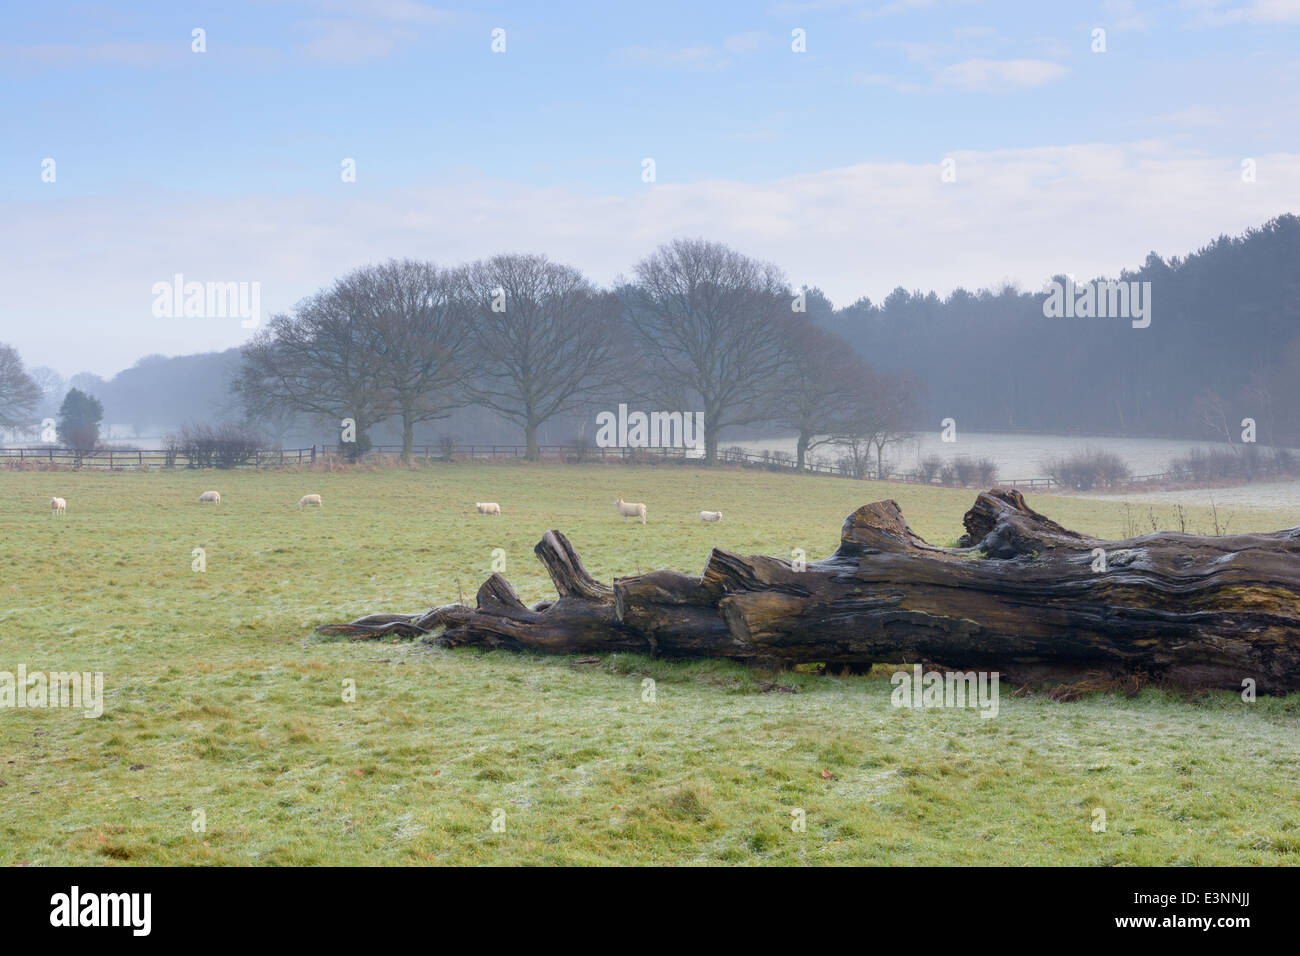 A fallen tree, grazing sheep trees and fences on a frosty foggy field. Shropshire England - Stock Image